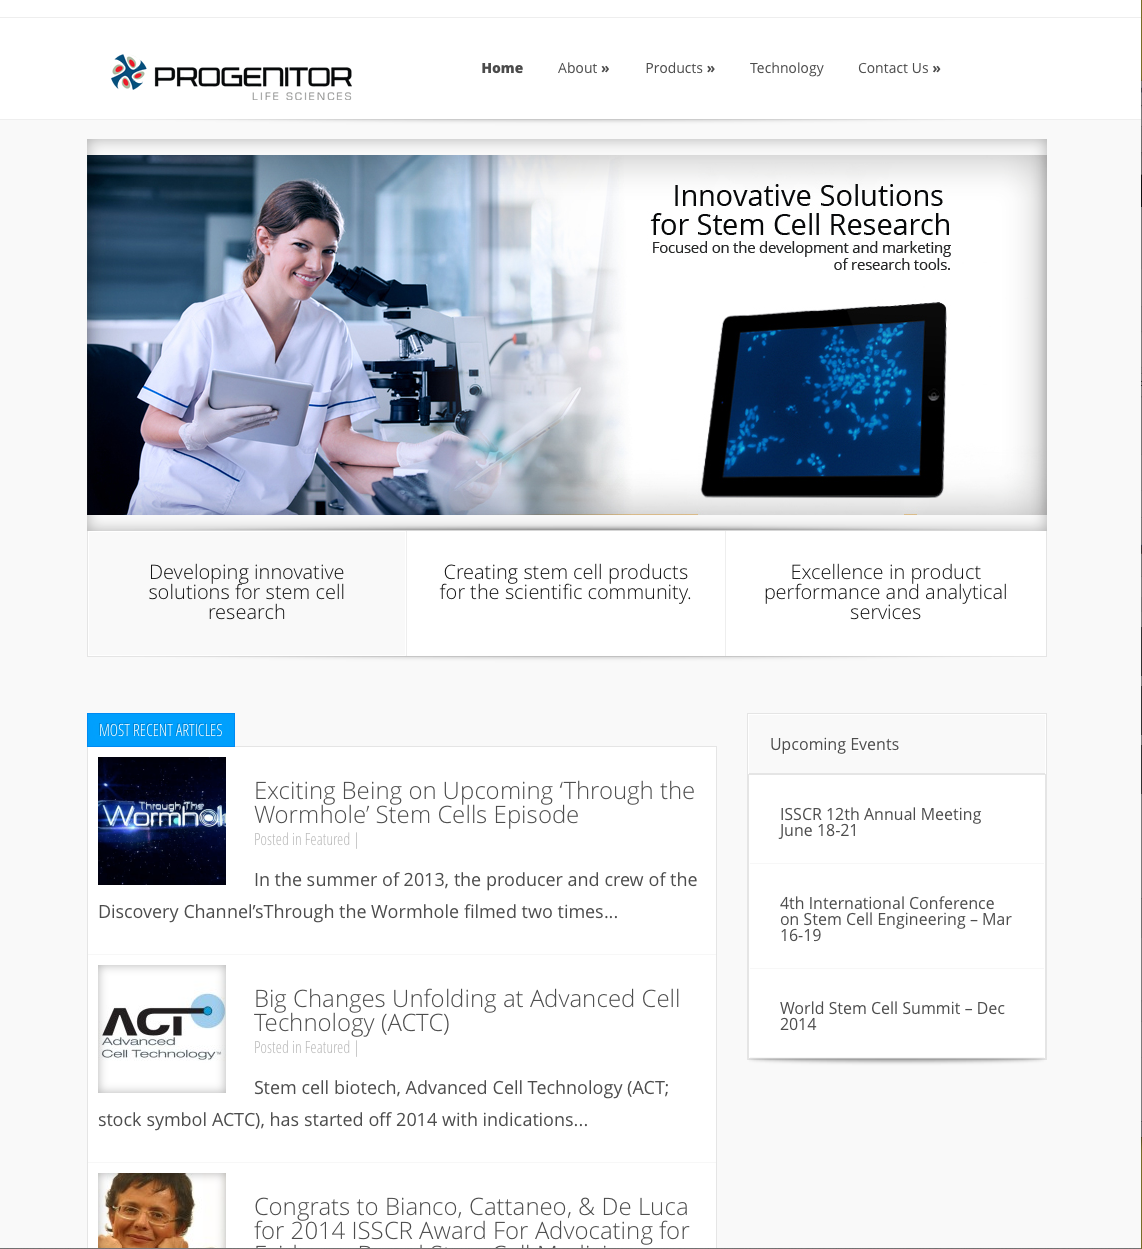 progenitor life sciences HOME PAGE